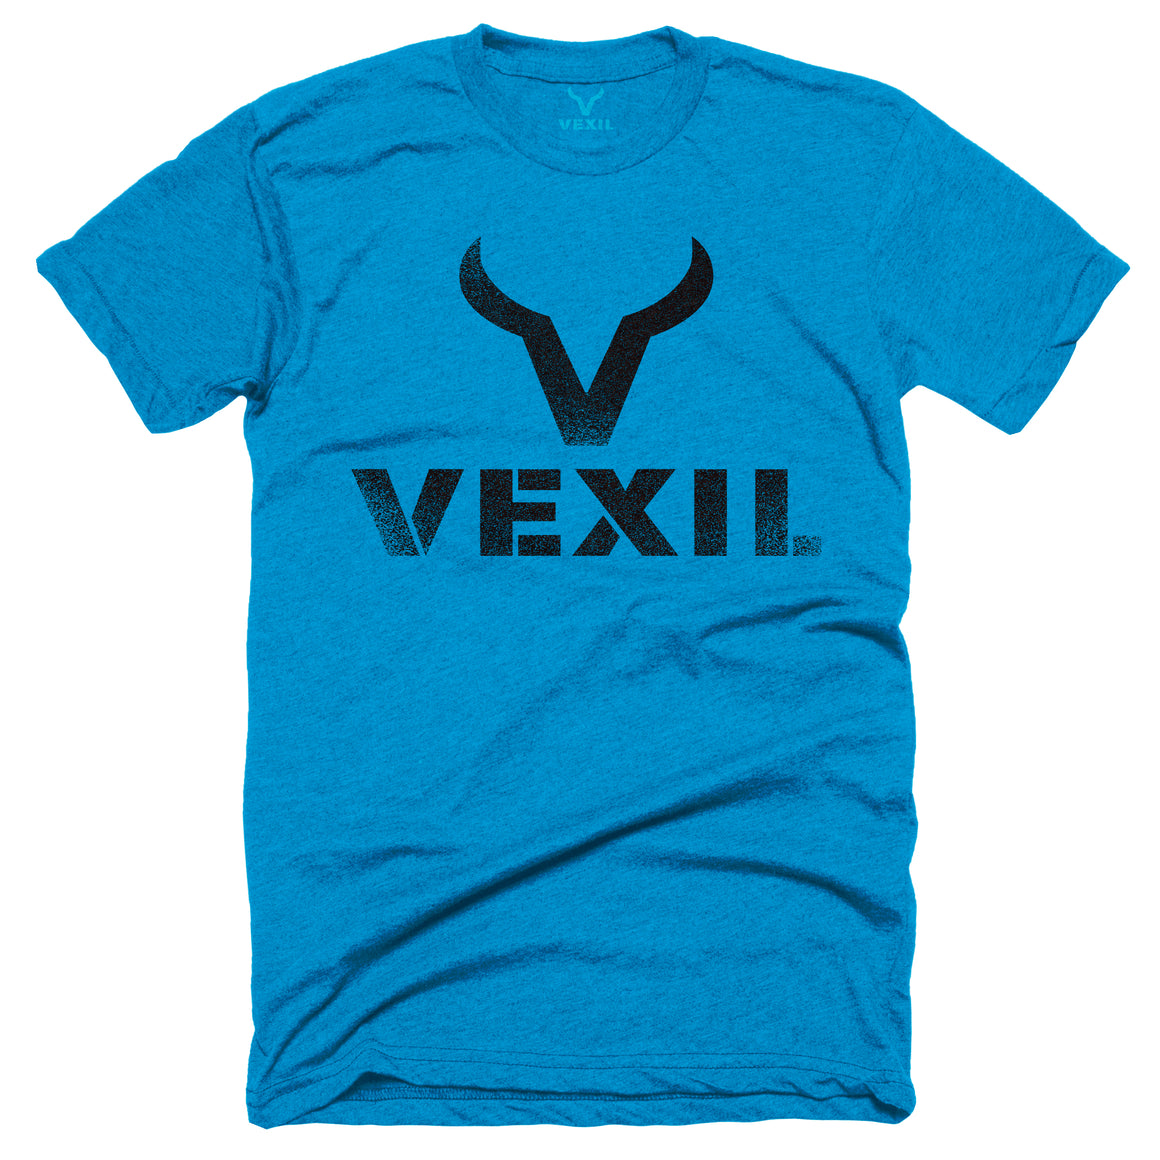 Vexil Brand - Distressed Logo - Turquoise